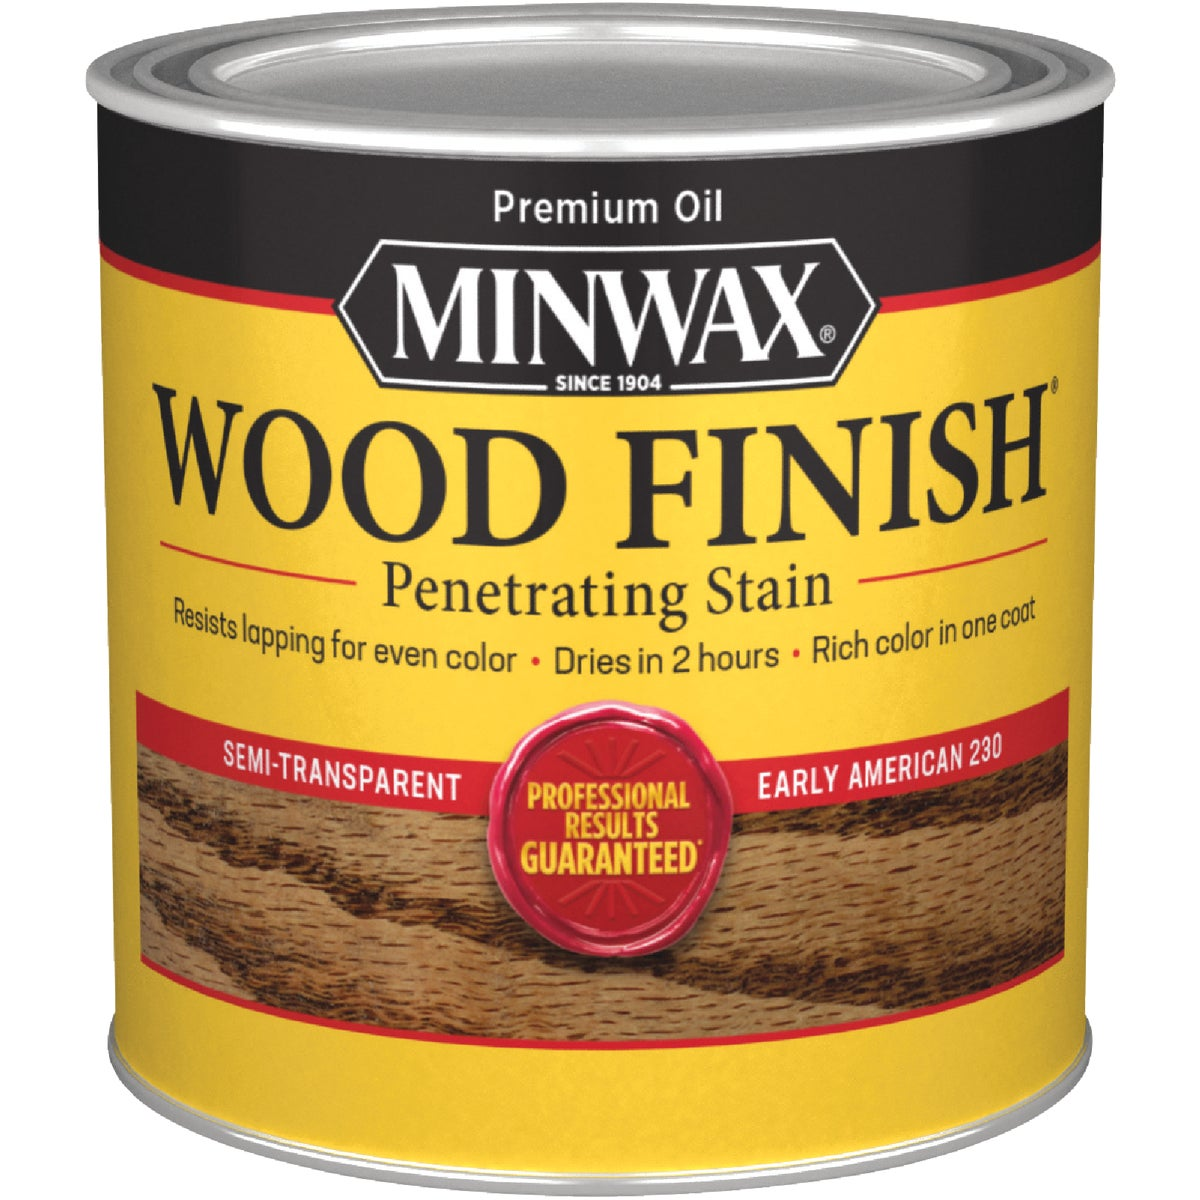 EARLY AMERICN WOOD STAIN - 223004444 by Minwax Company